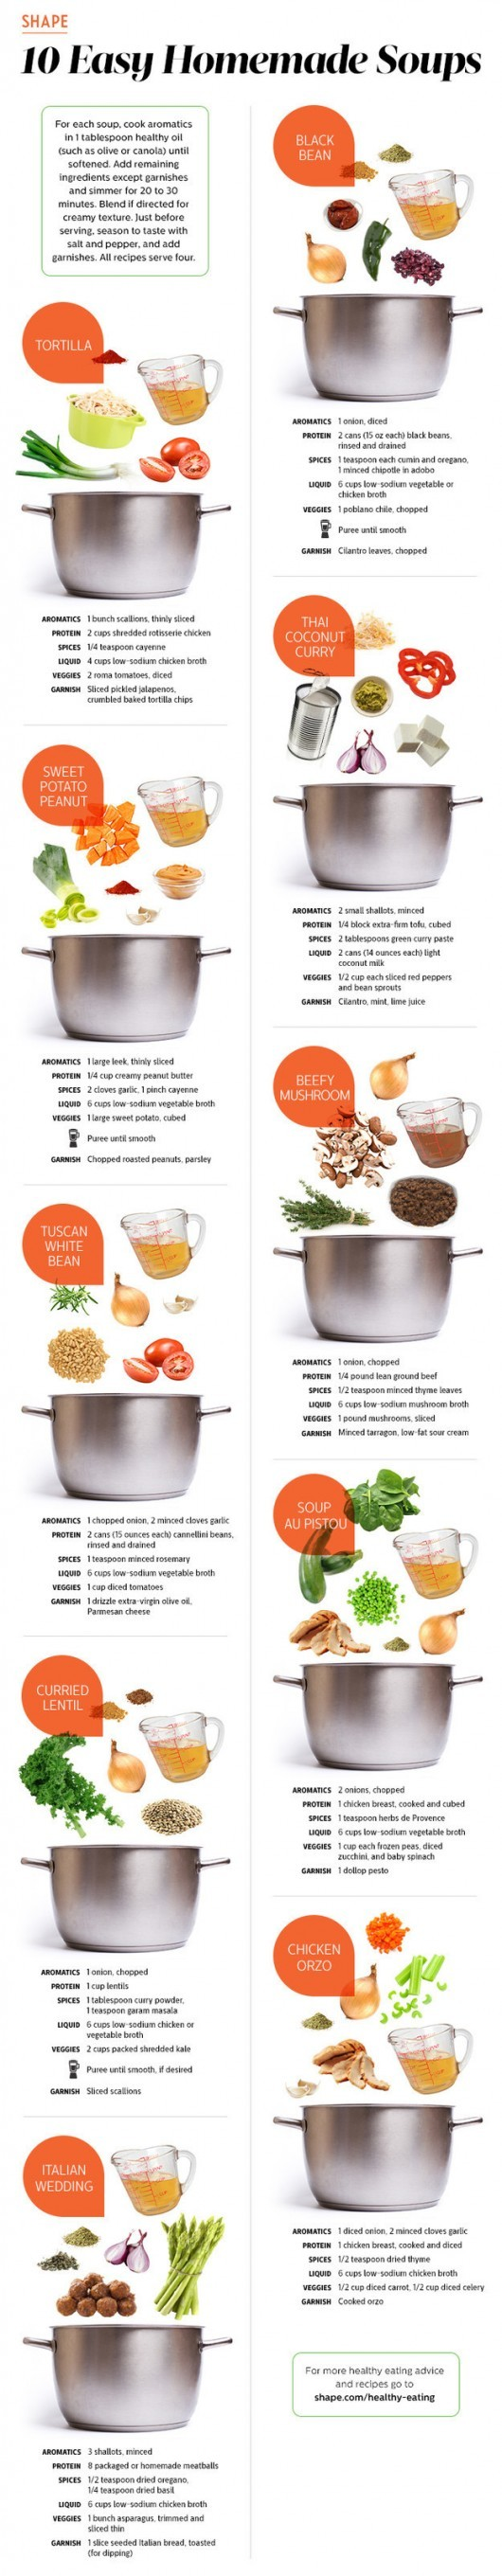 11 Really Useful Food & Cooking Infographics